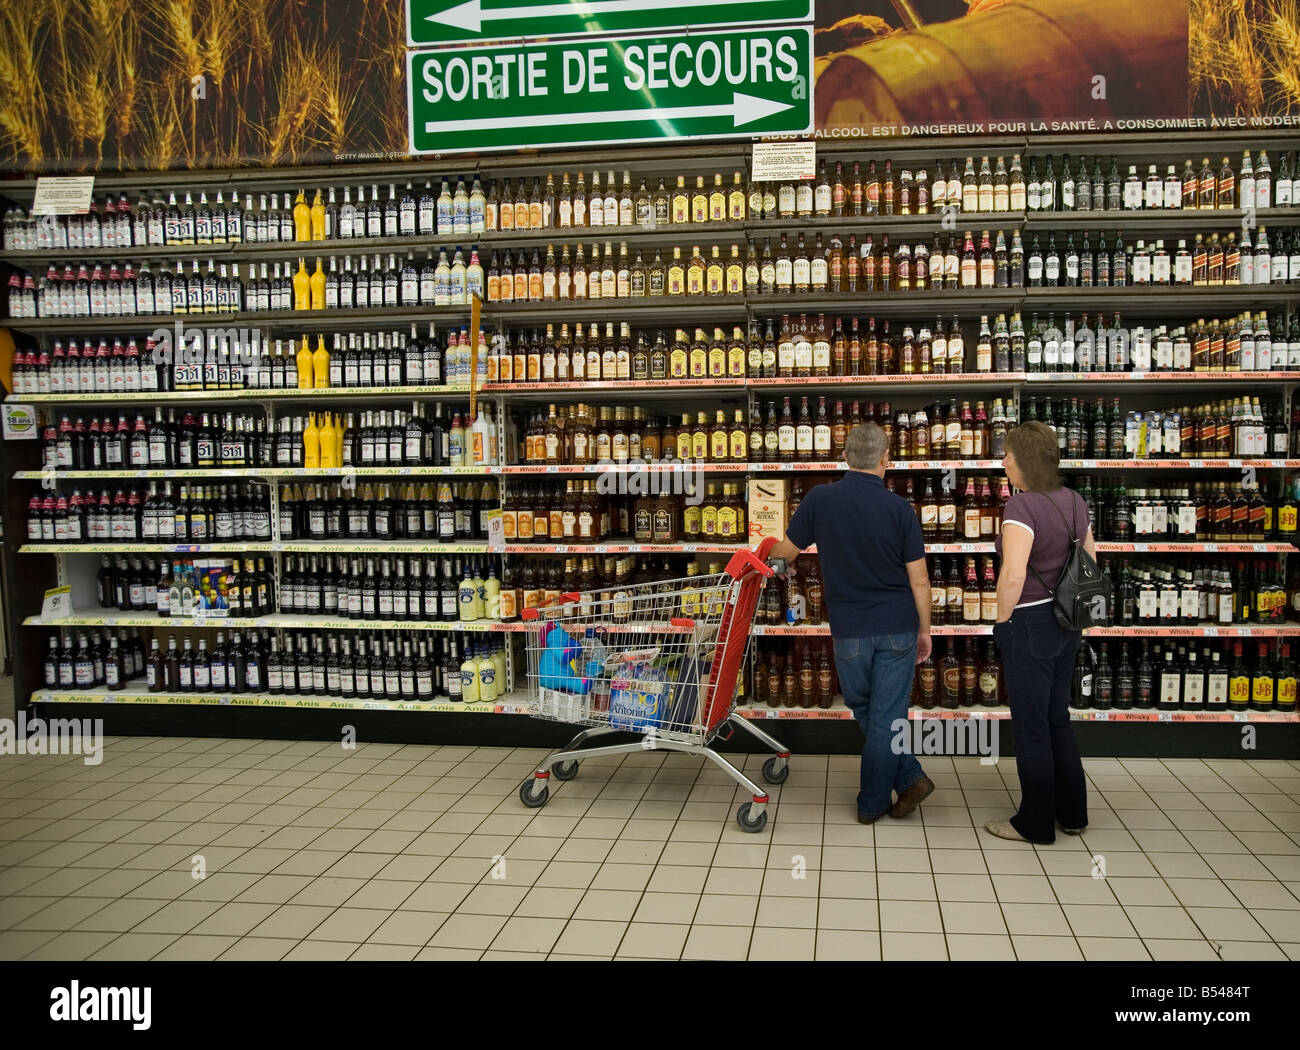 France Shopping for cheap wine and spirits at a superstore in Calais  2008 - Stock Image